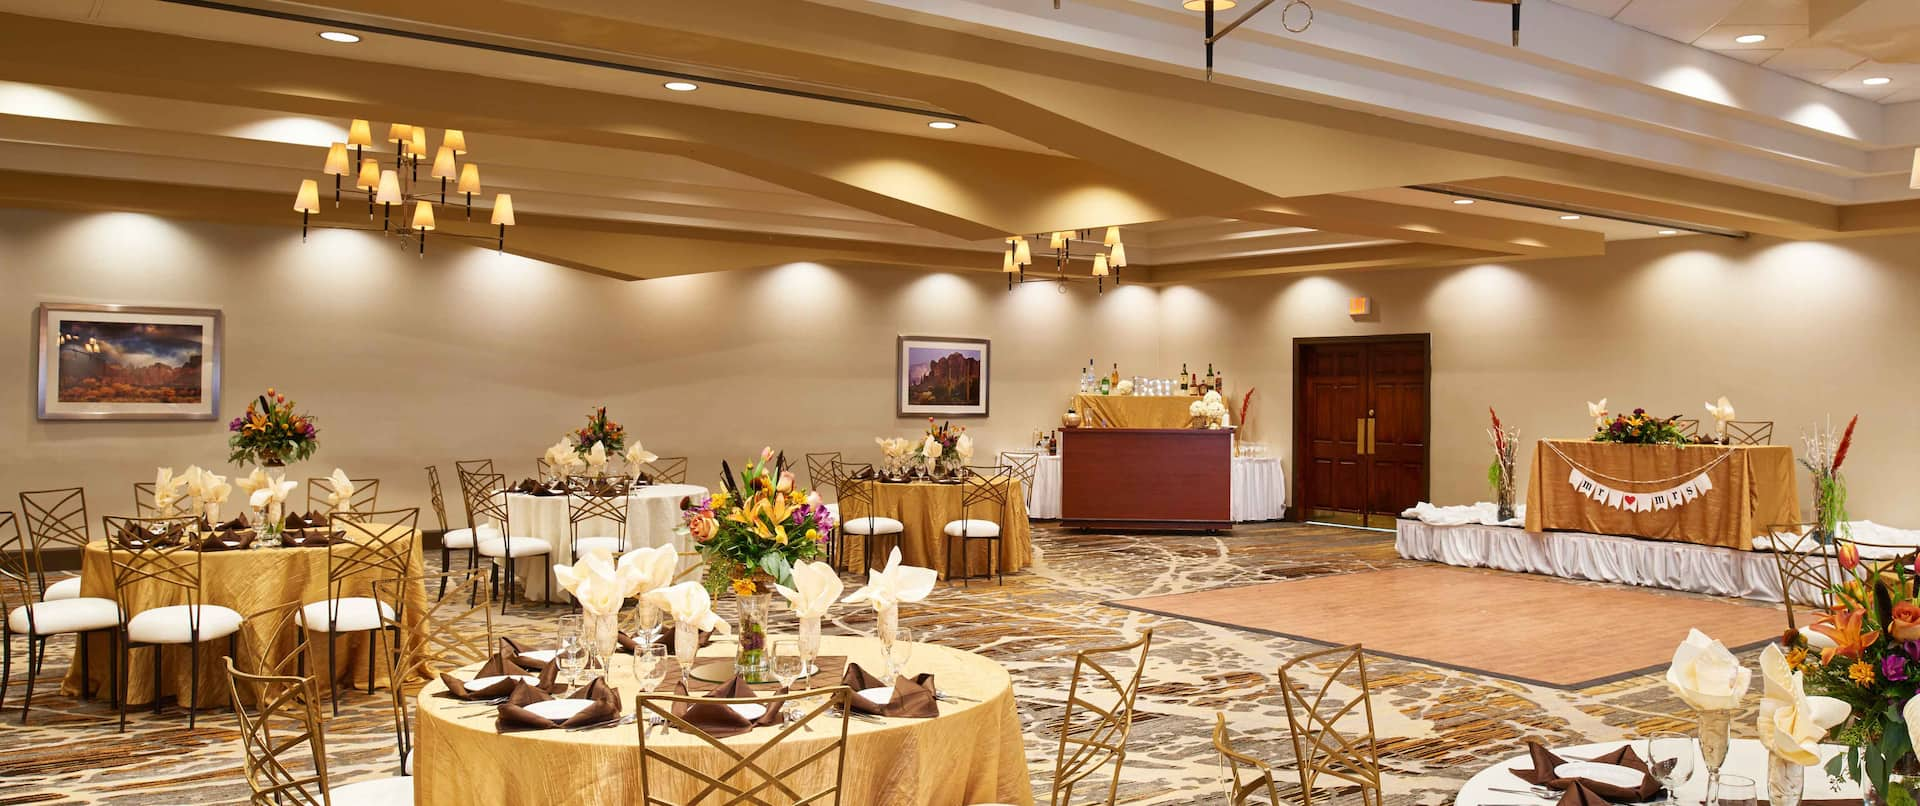 Ballroom Set Up With Place Settings and Flowers on Banquet Tables, Bar and Dance Floor